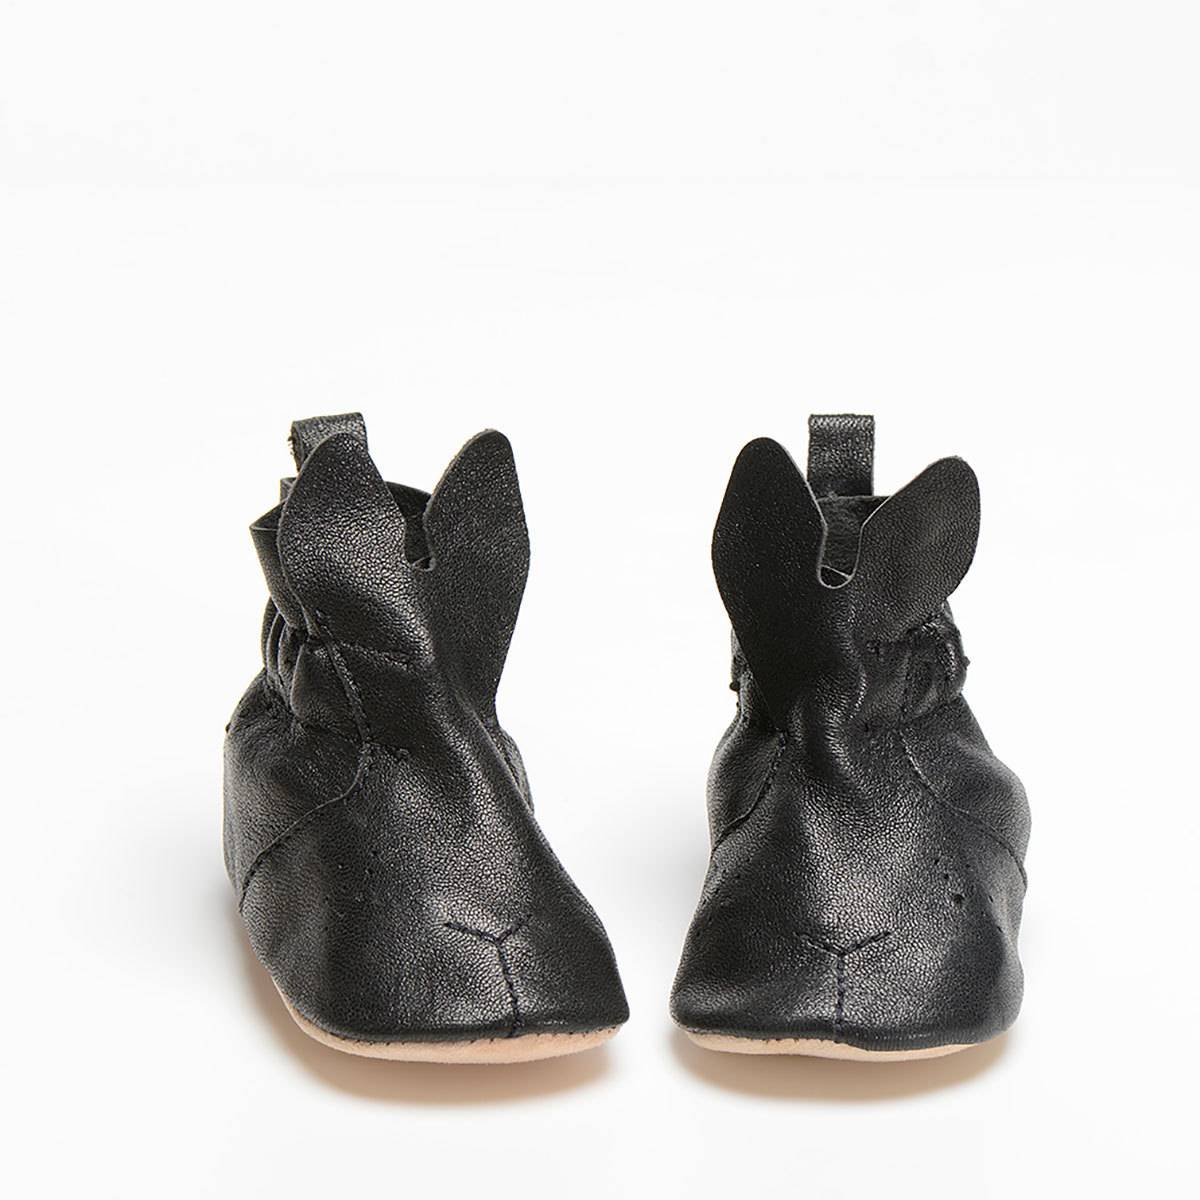 Jolee Mome Chaussures Lilou Black - Taille 24